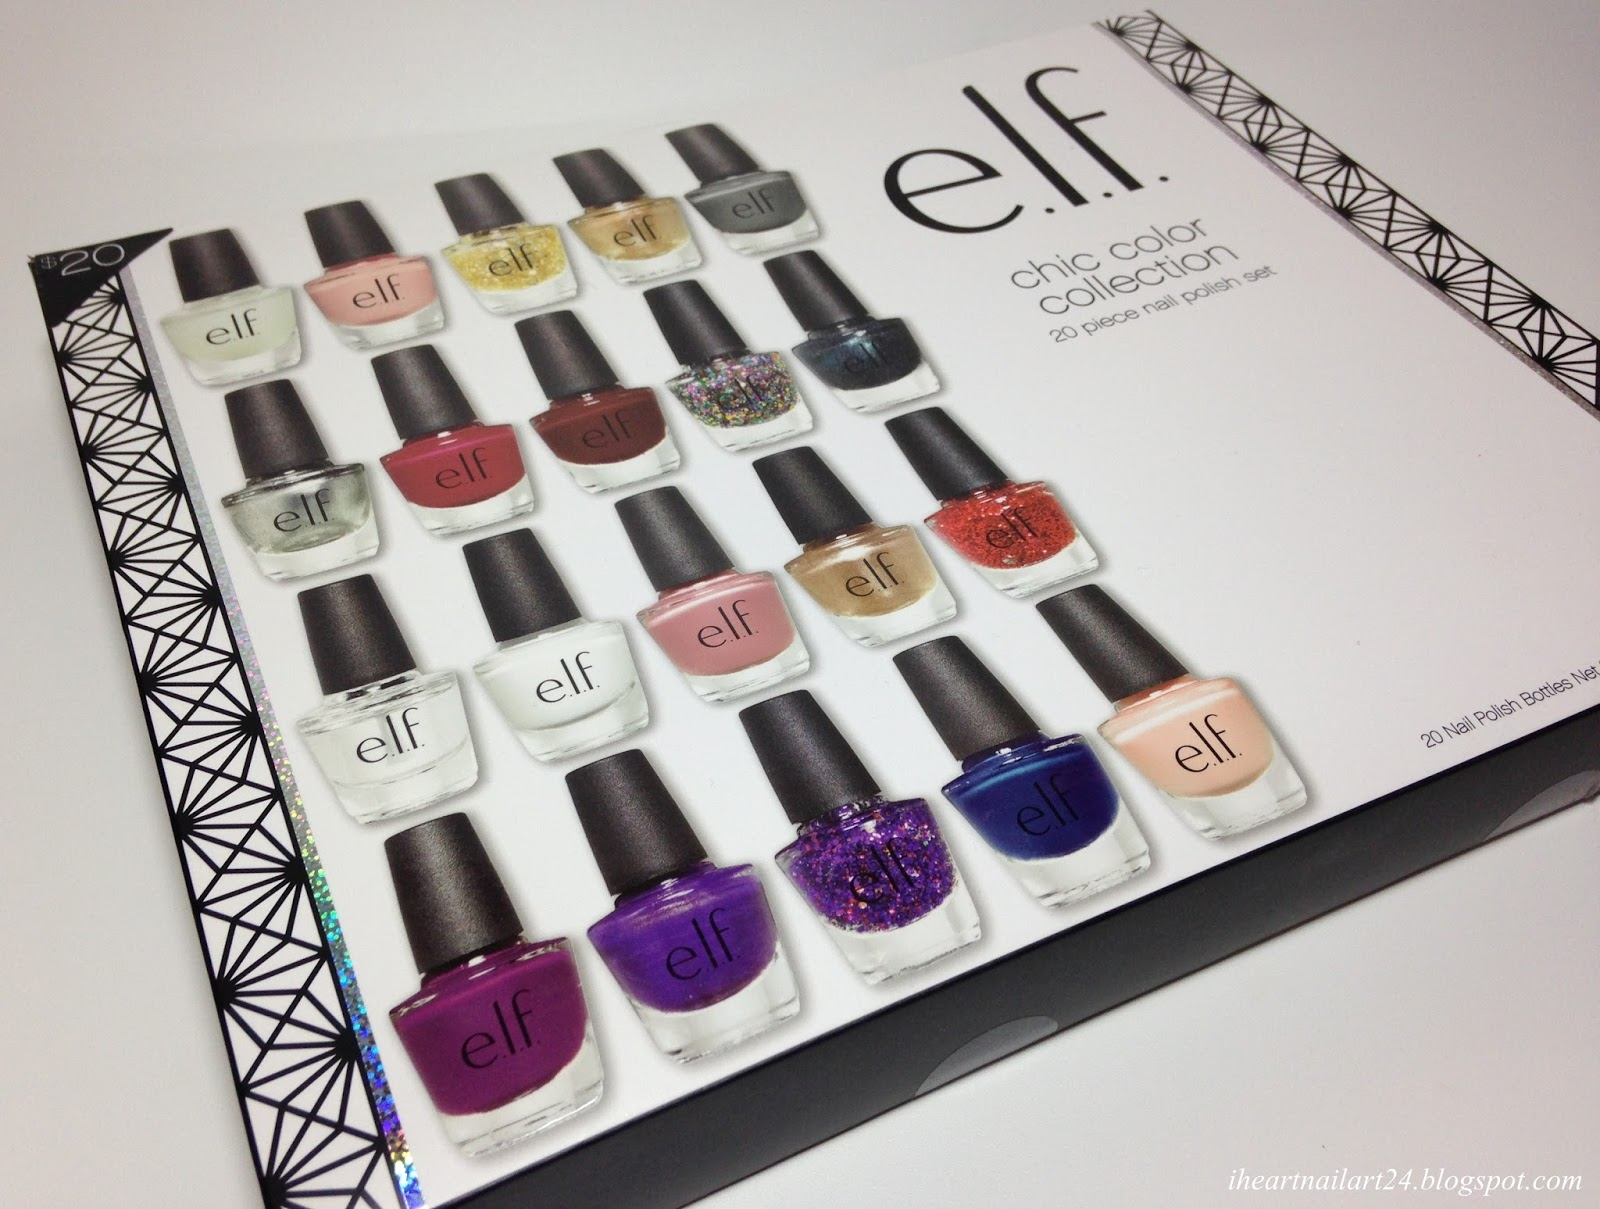 e.l.f Chic Color Collection Swatches | I Heart Nail Art